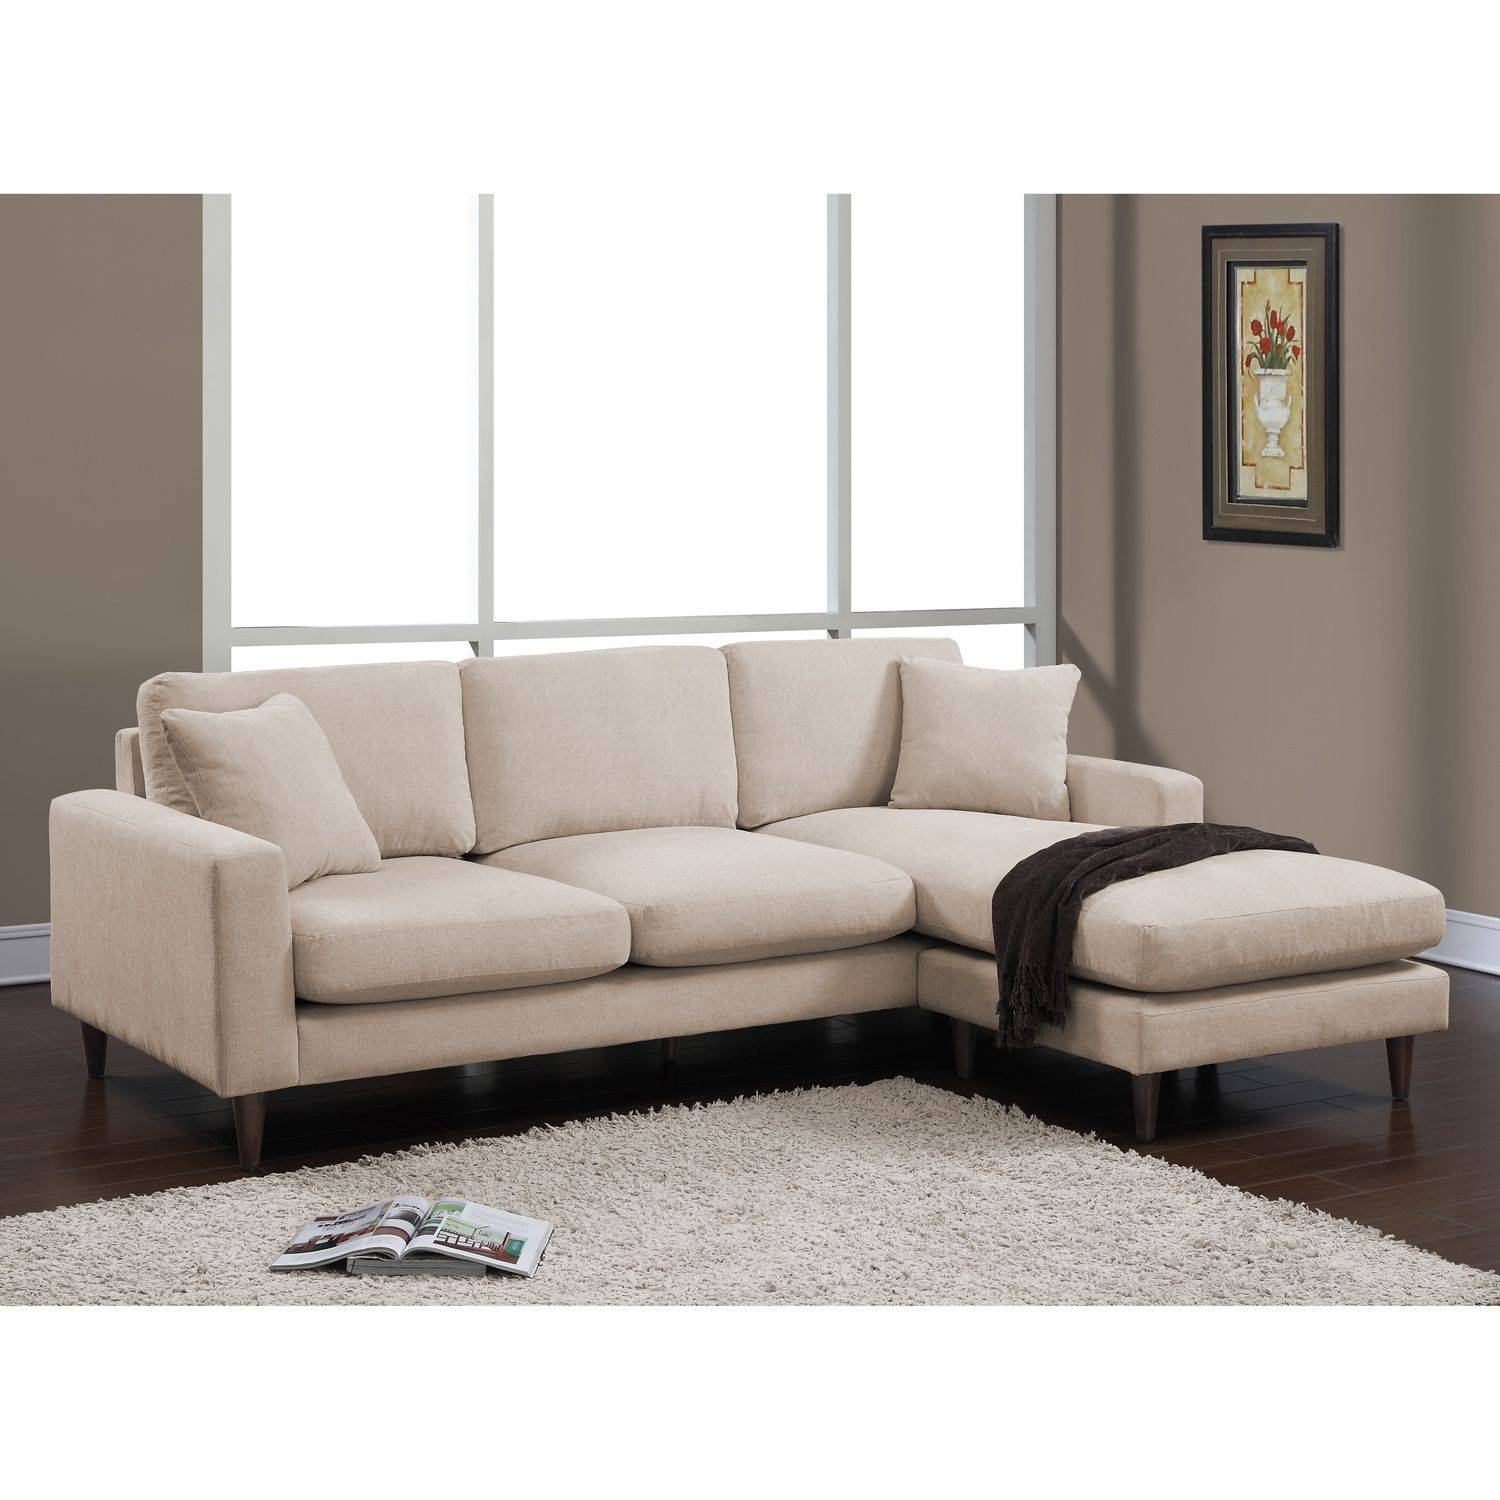 Fashionable Down Sectional Sofa Color Options — Home Design regarding Down Sectional Sofa (Image 10 of 25)